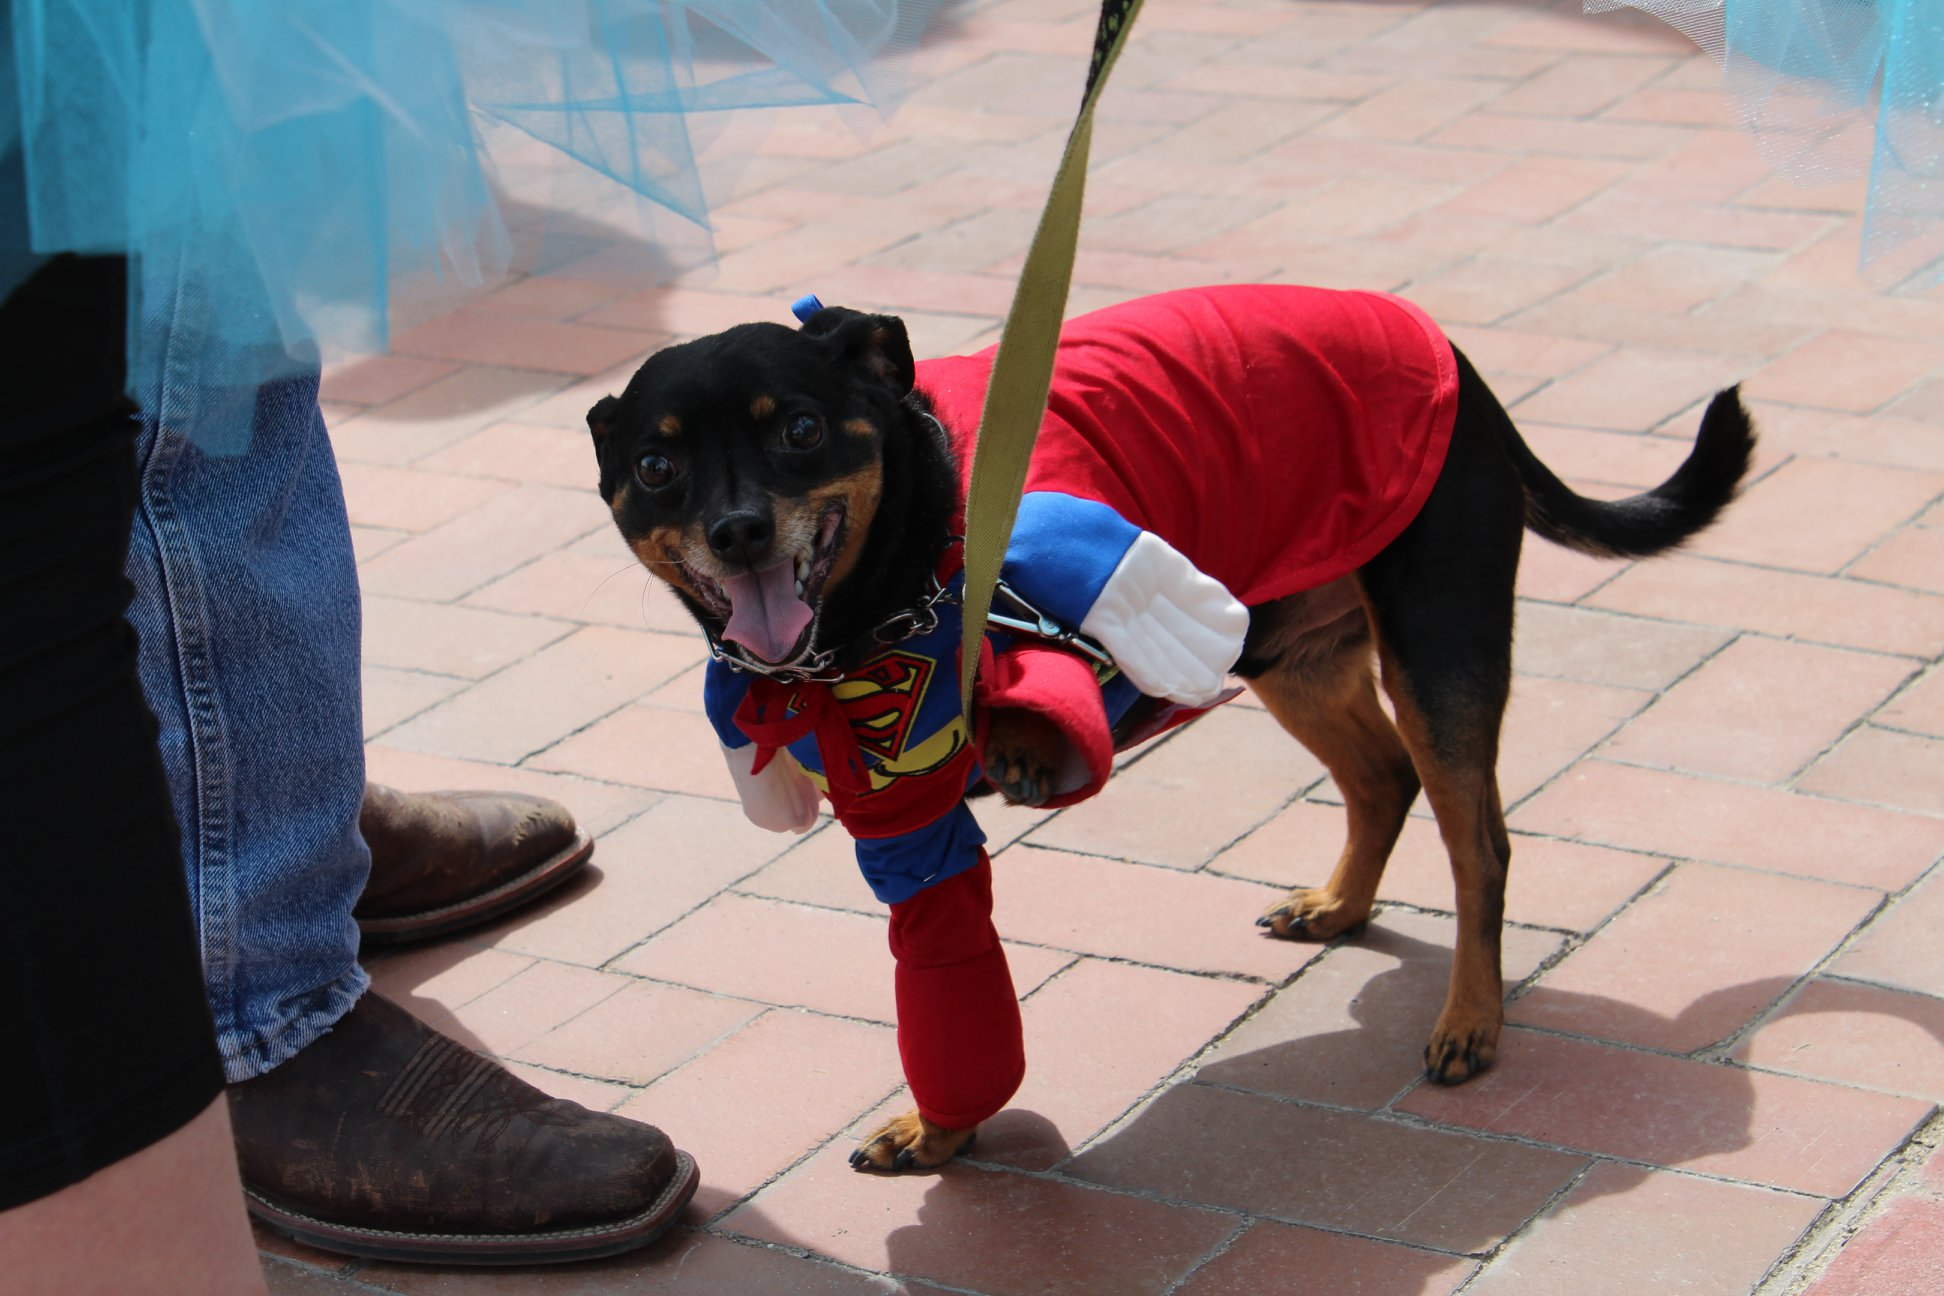 Residents (and some with their pets) dressed up in their favorite superhero costumes in Caldwell over the weekend to help bring awareness to child abuse. (Photo courtesy Canyon County){ }{ }